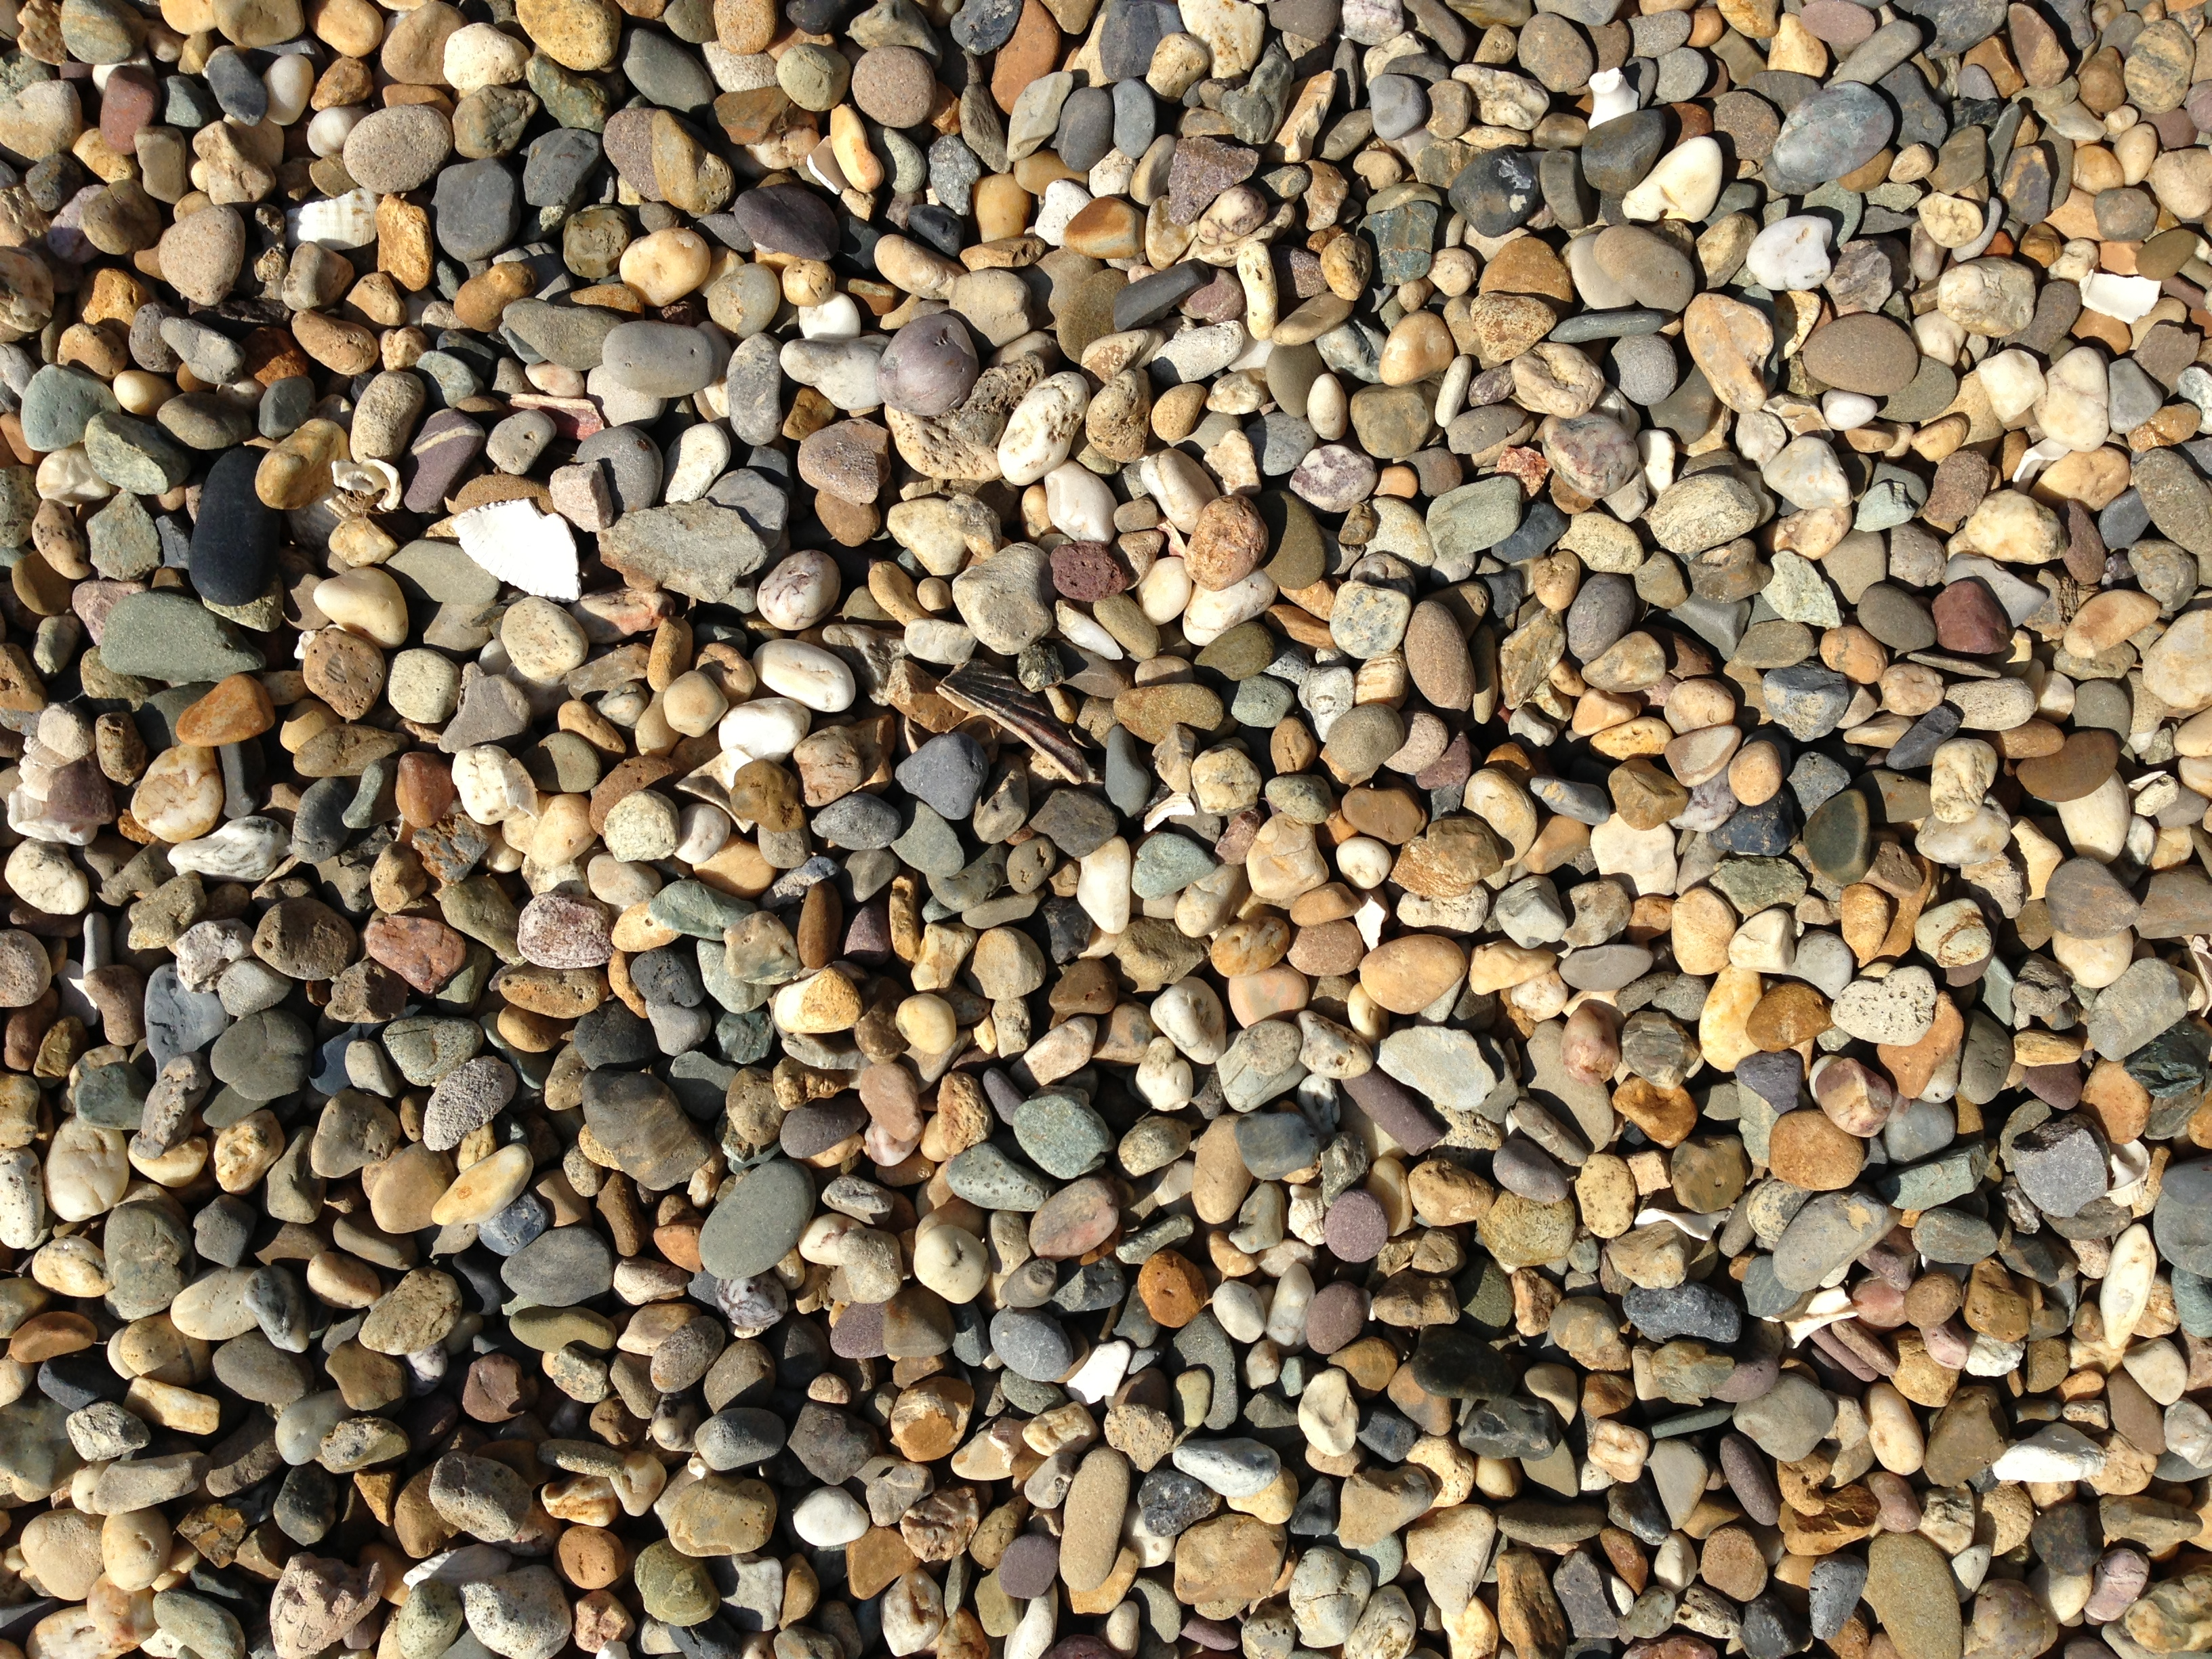 more work for aggragates in oxford - image is stone for gravel supply